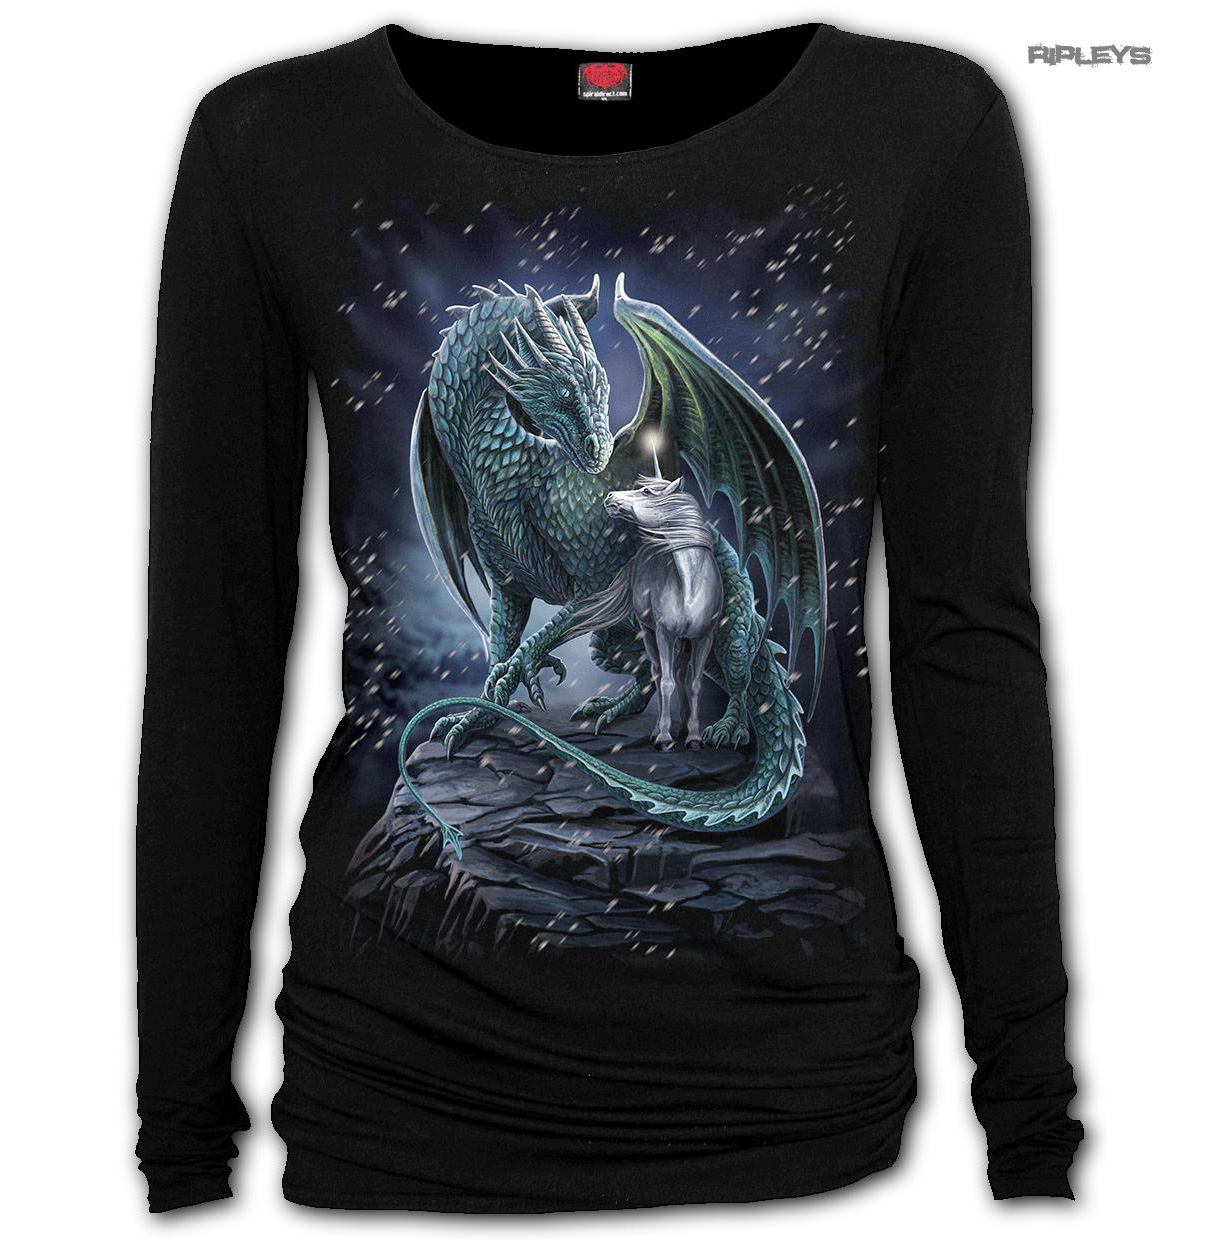 Spiral-Ladies-Gothic-Unicorn-Dragon-PROTECTOR-OF-MAGIC-L-Sleeve-Top-All-Sizes thumbnail 4